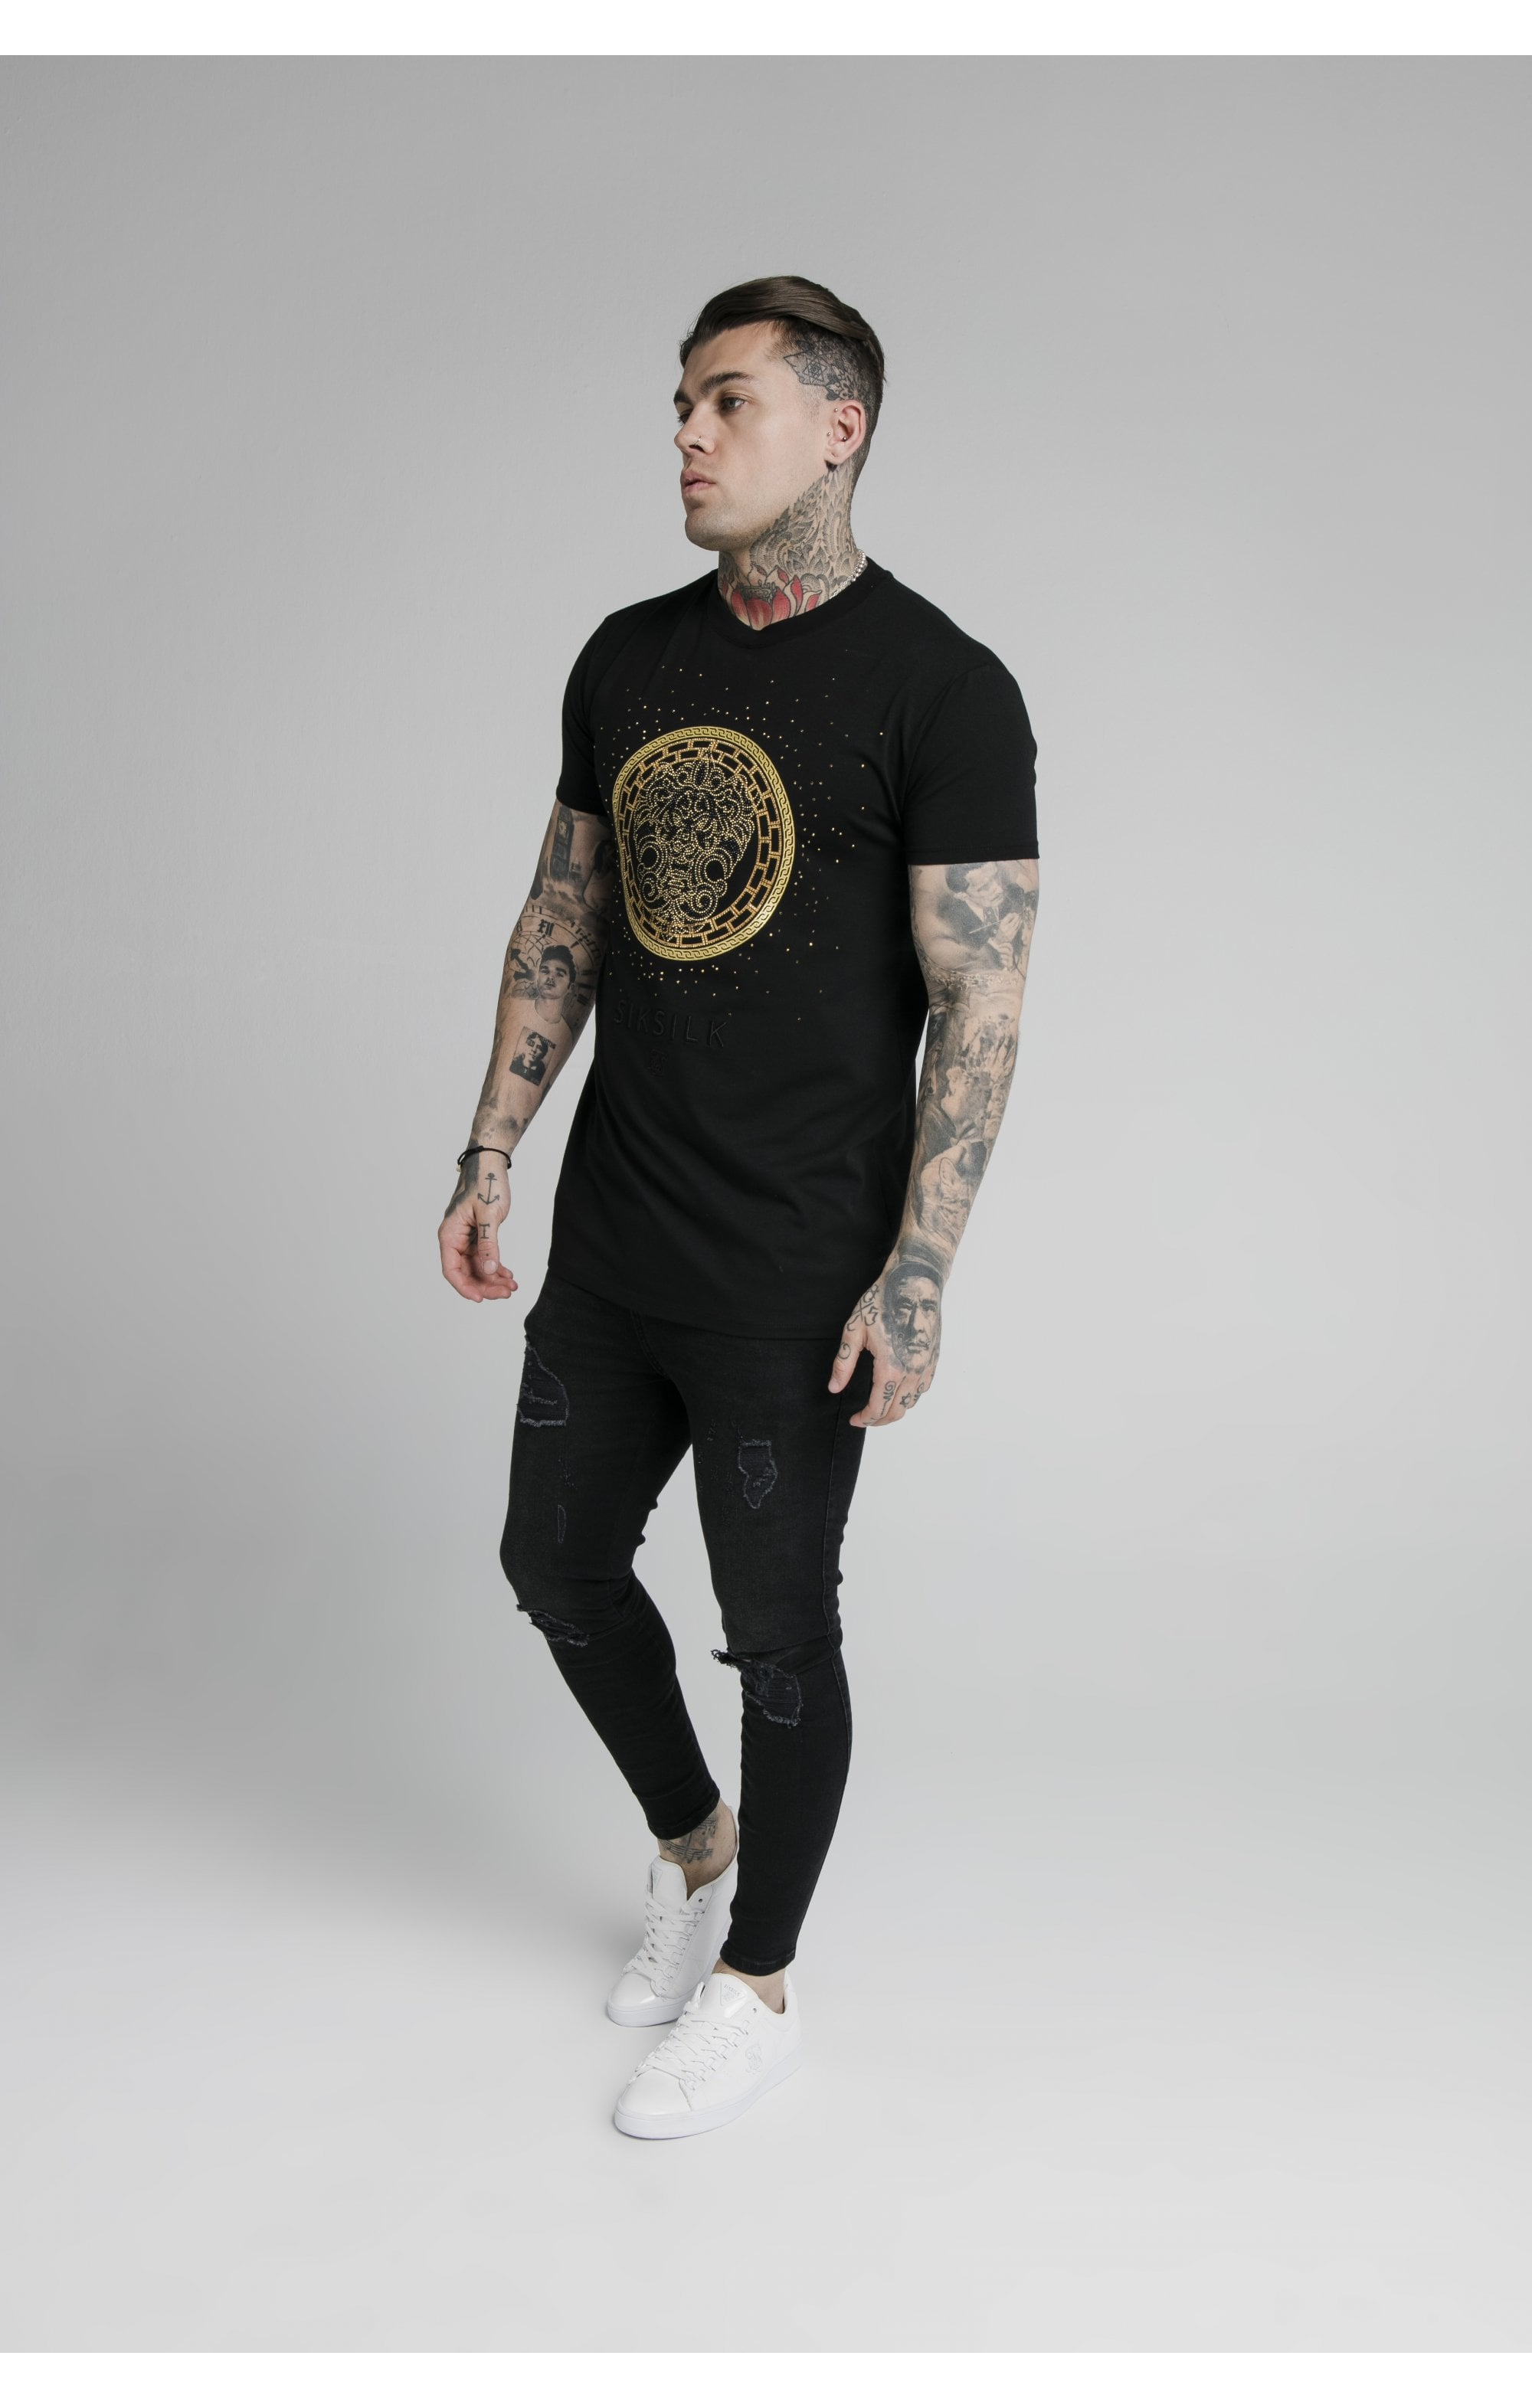 SikSilk Rhinestone Lion Tee - Black (4)